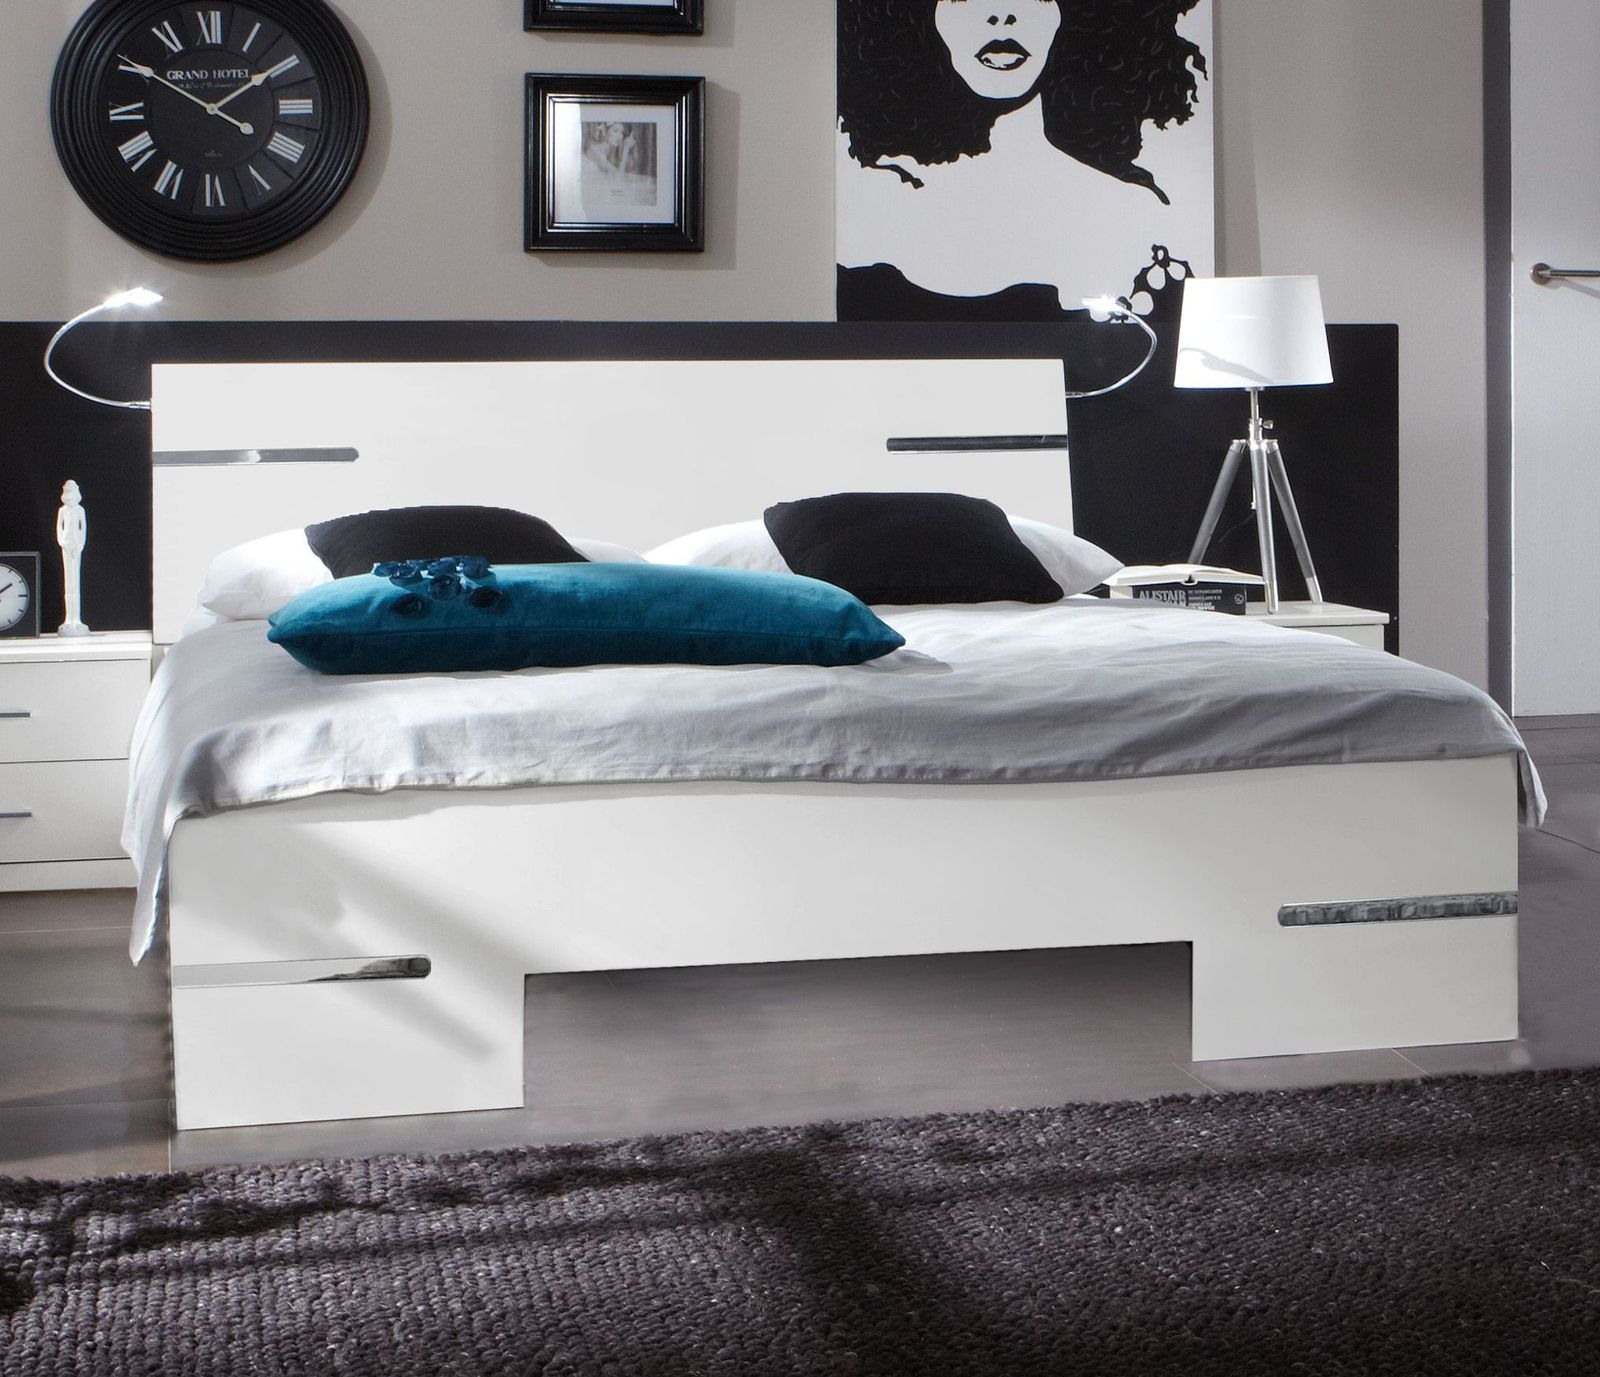 wei es futonbett mit verchromten zierleisten manati. Black Bedroom Furniture Sets. Home Design Ideas